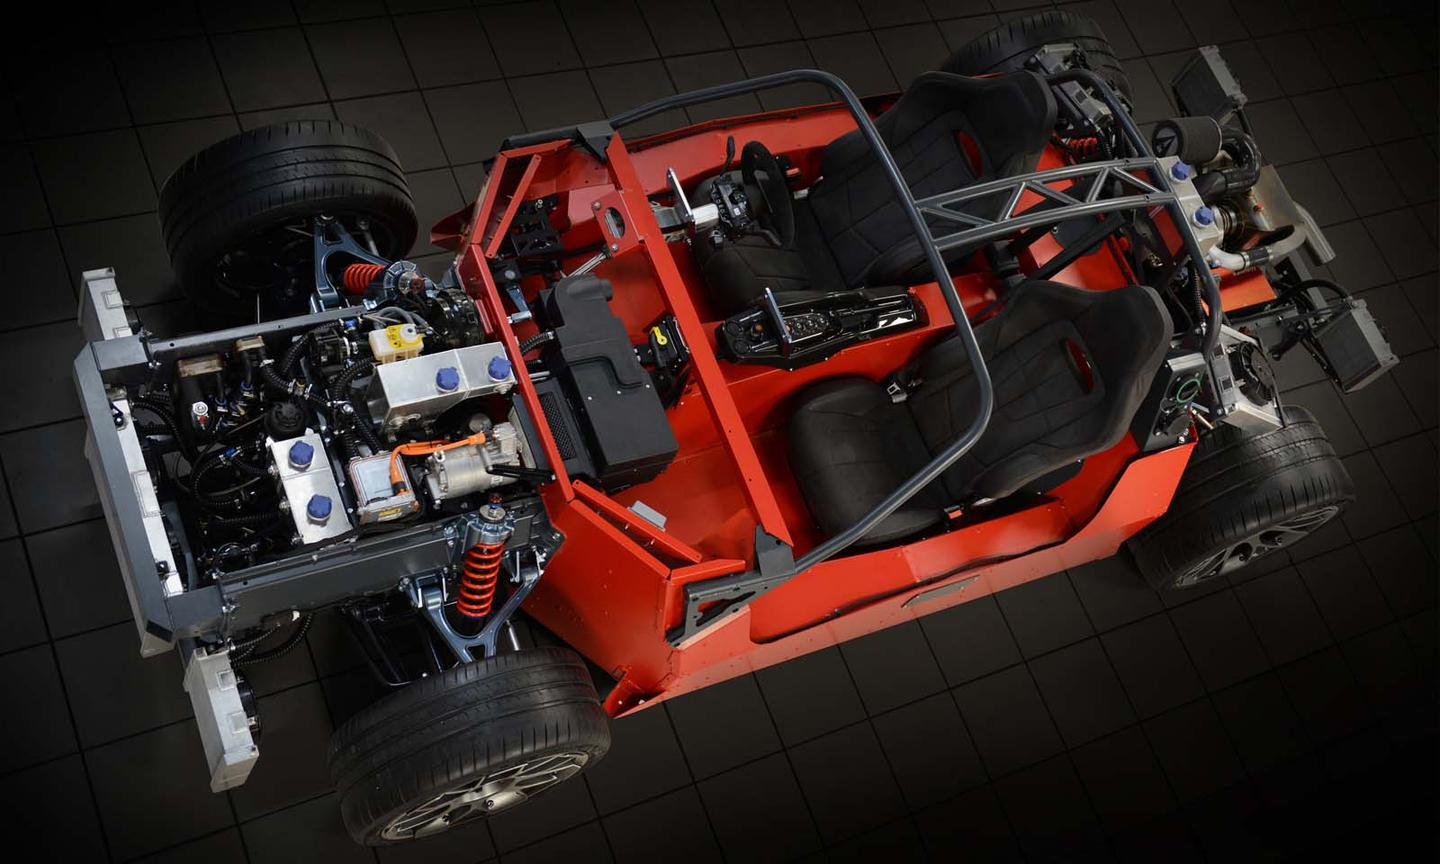 A look at the chassis and powertrain of the Ariel HIPERCAR